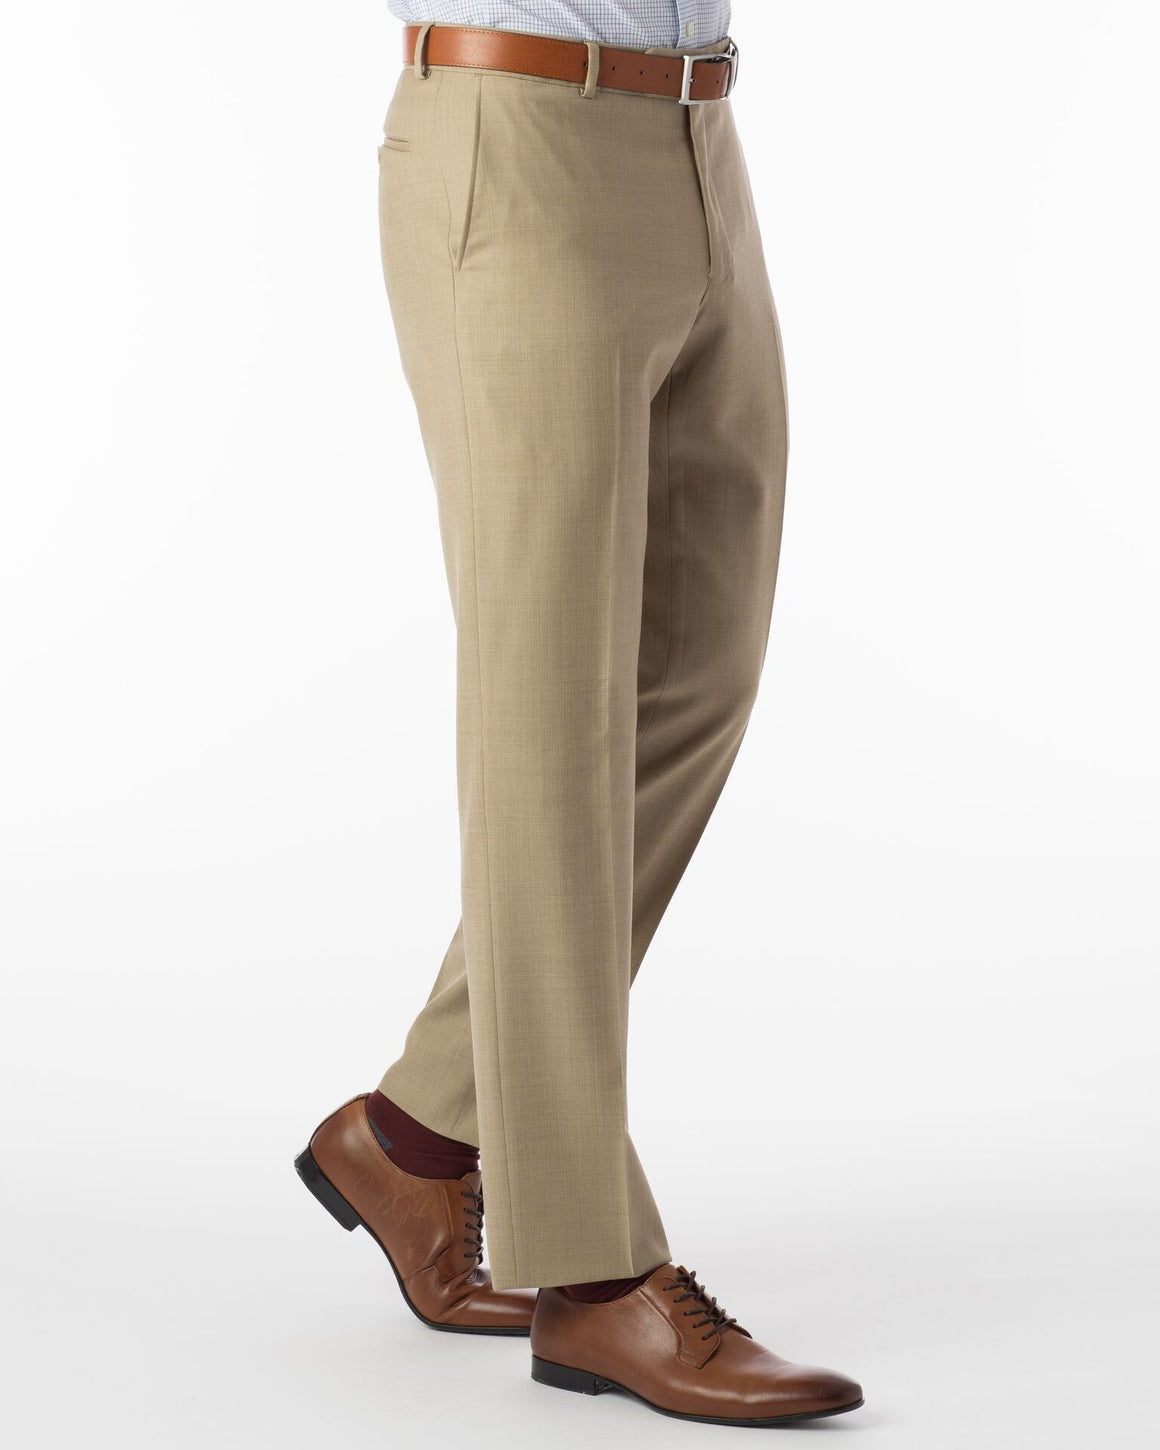 Ballin Super 110's Comfort-Eze Sharkskin Soho Dress Pant | Camel